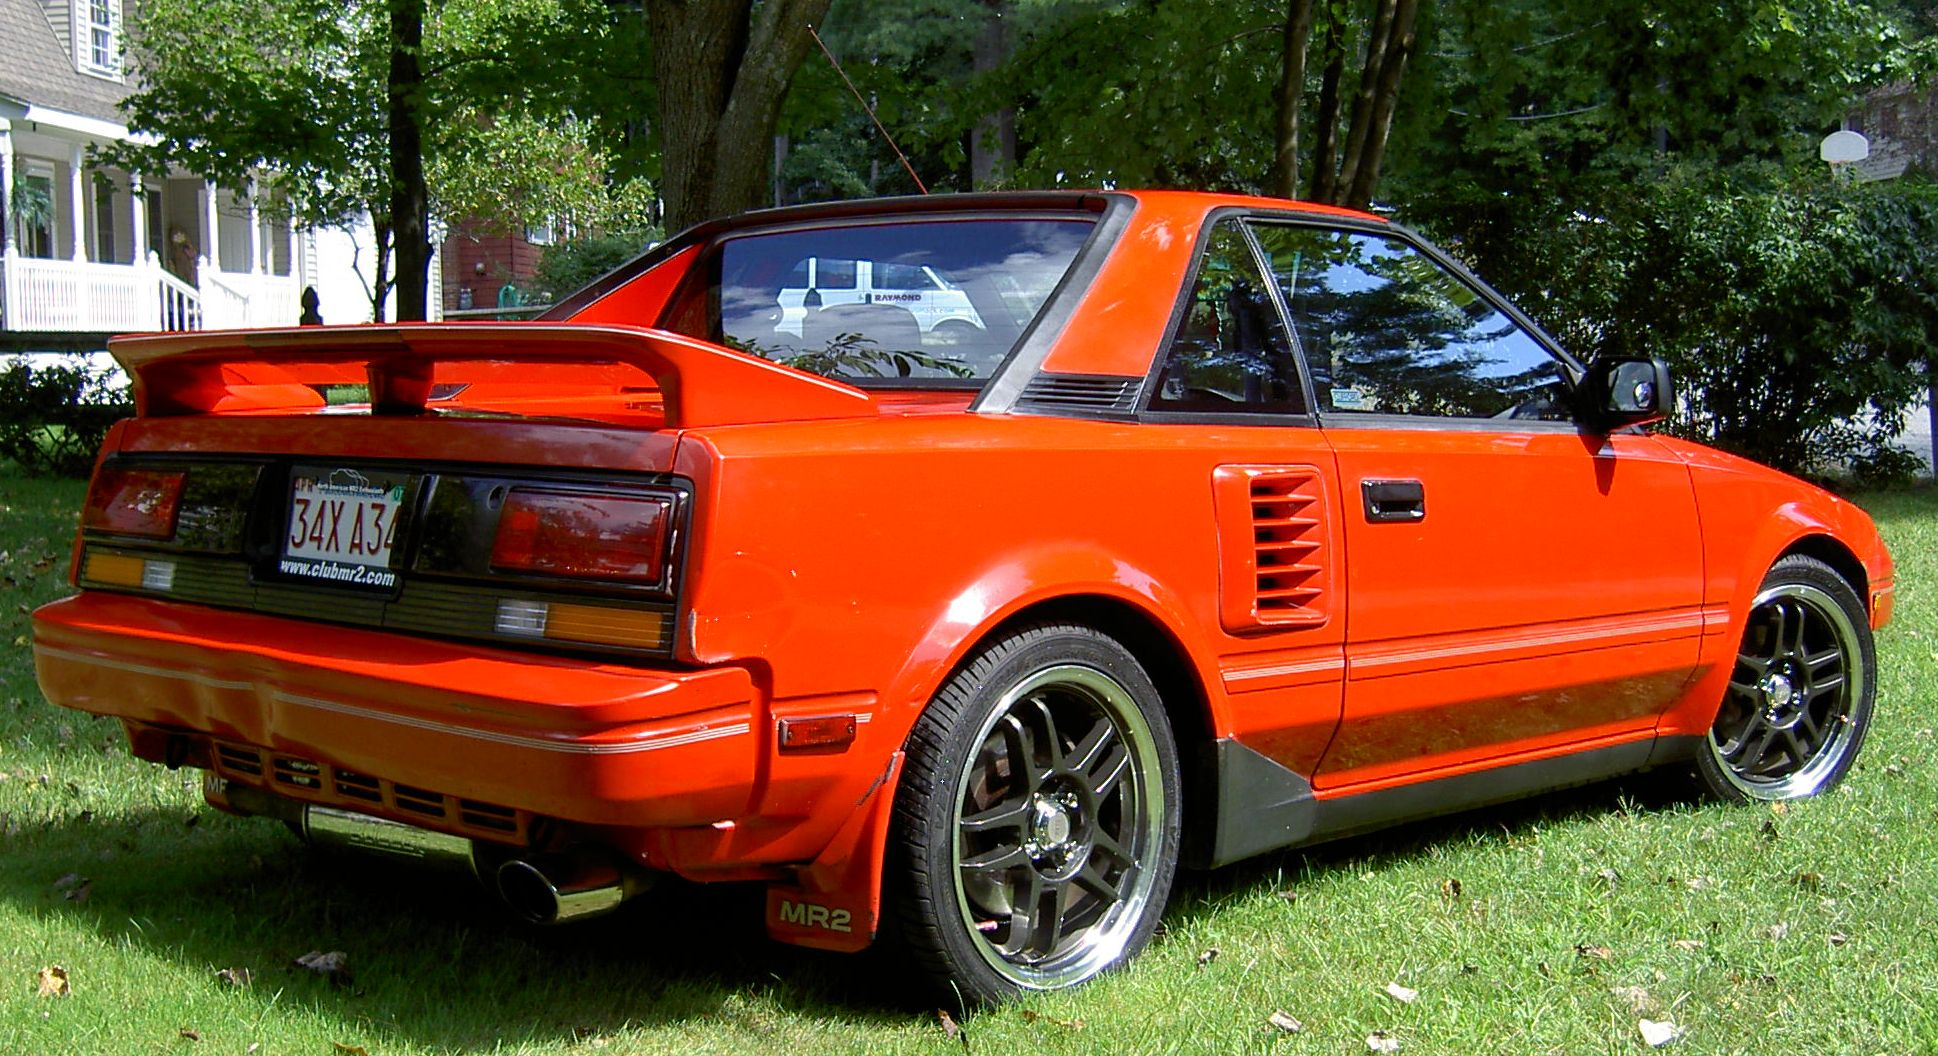 Toyota mr2 photo - 3